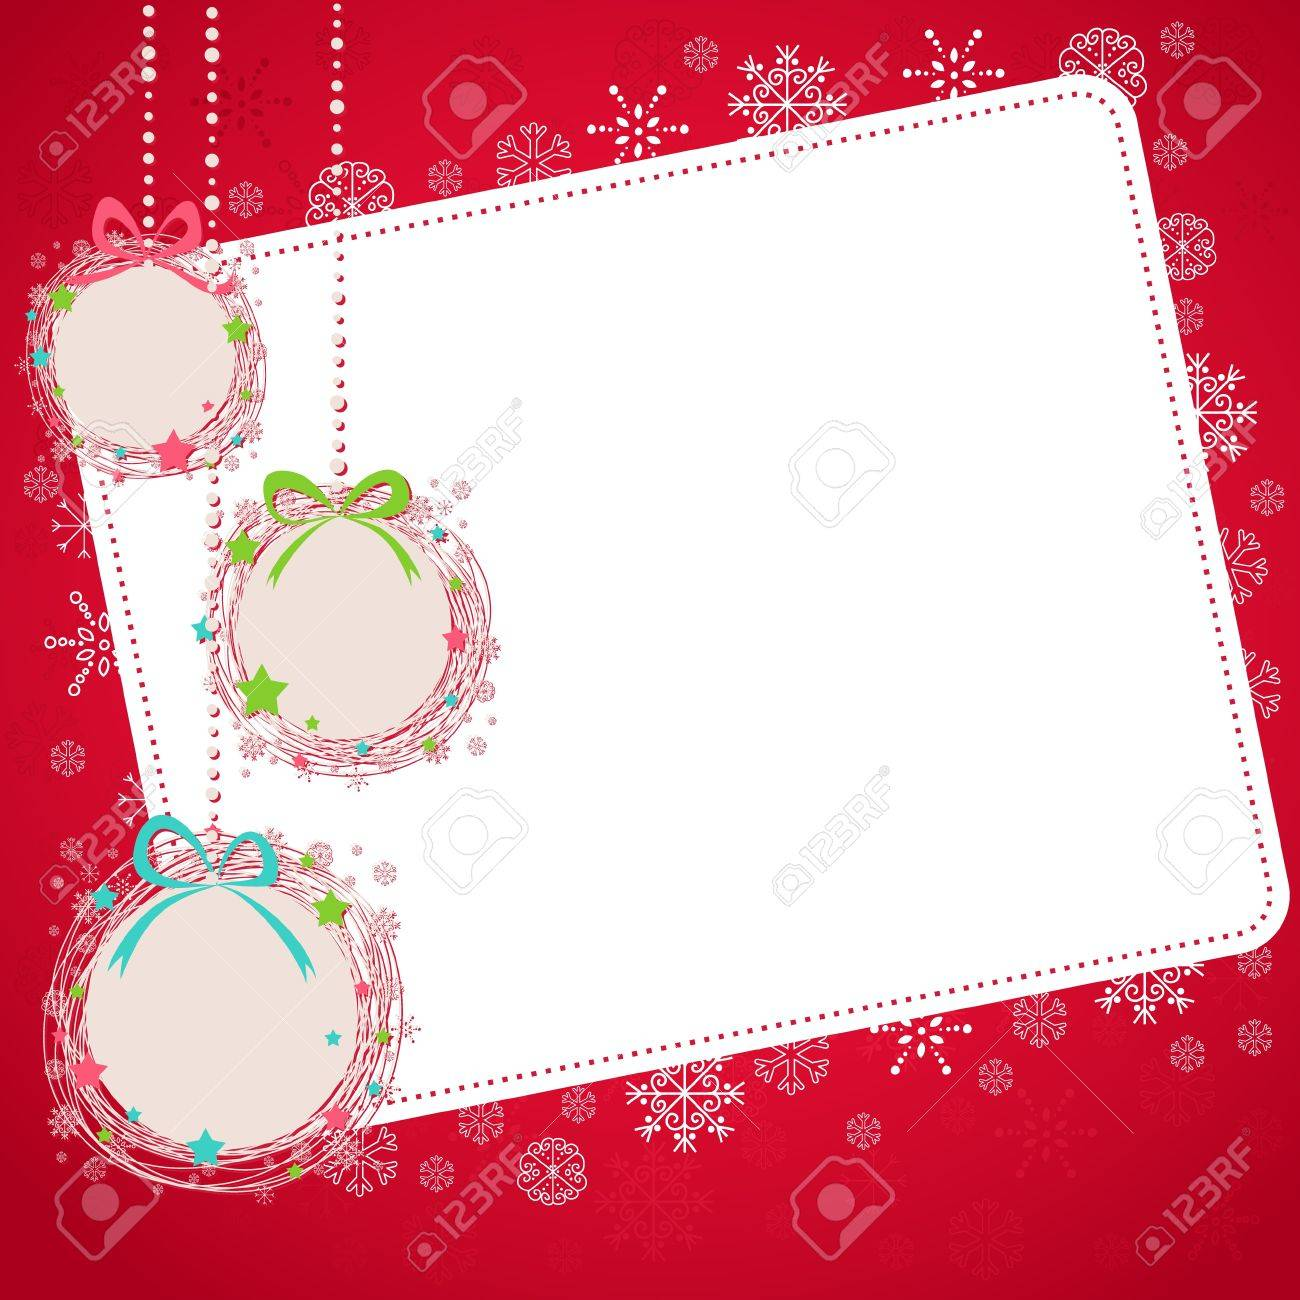 Cute Hand drawn Christmas ball toys card with snowflakes Stock Vector - 16424340